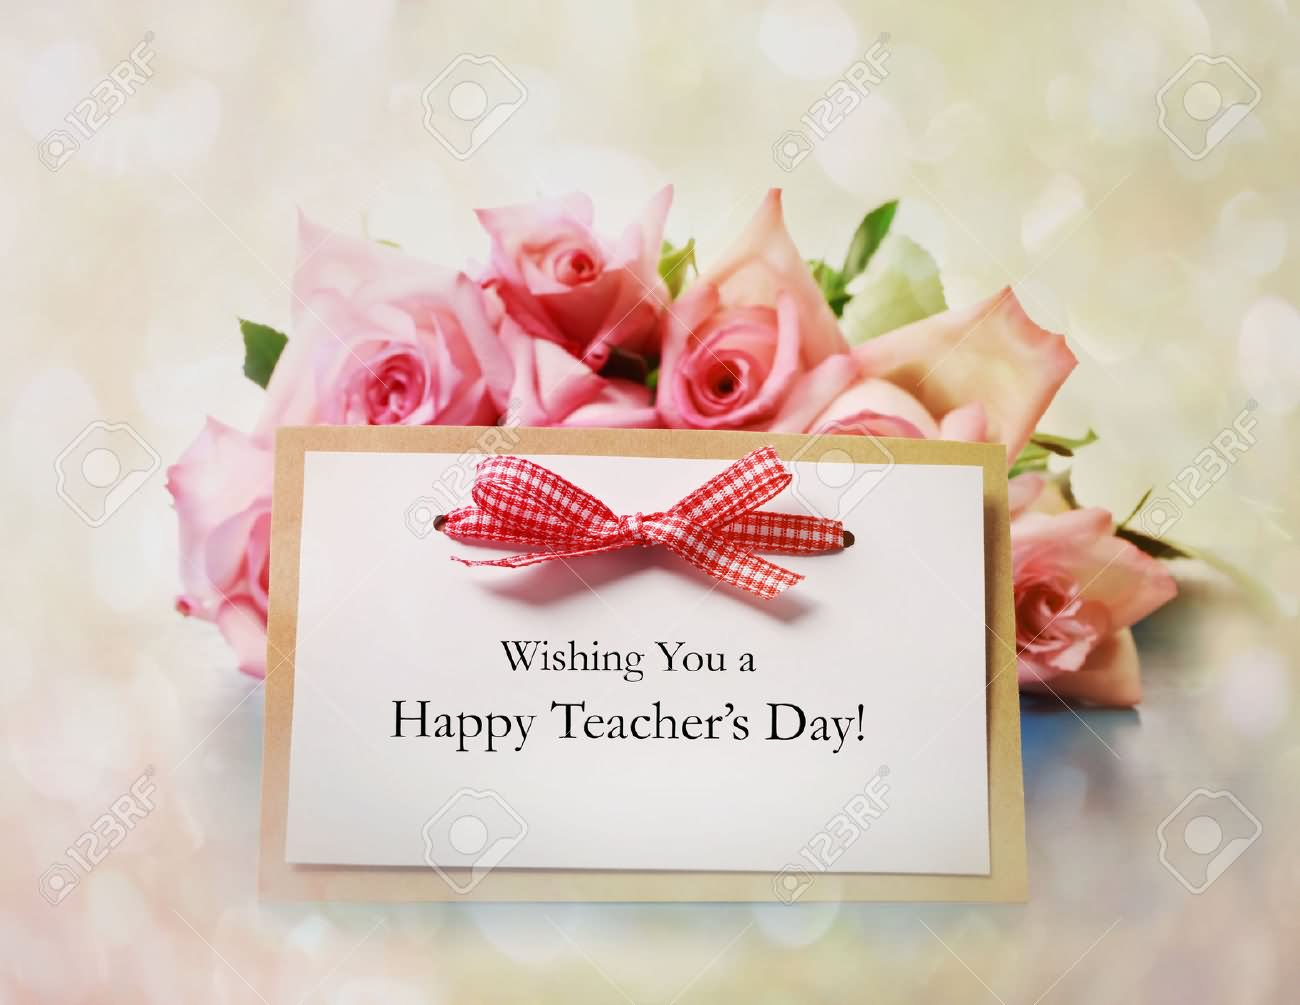 50 beautiful teachers day greeting card pictures and images wishing you a happy teachers day beautiful greeting card with bow m4hsunfo